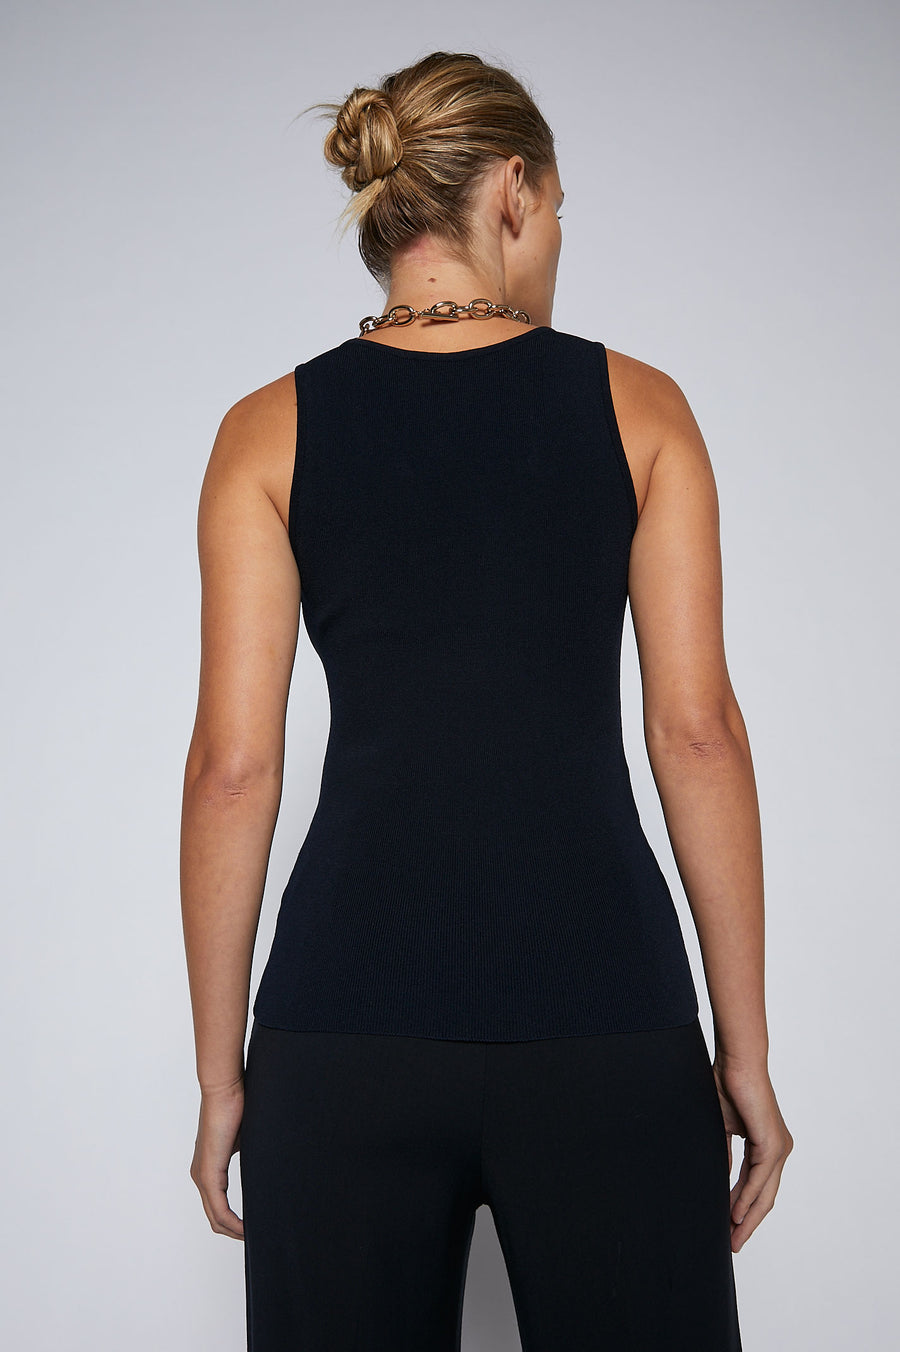 The Crepe Knit Cropped Singlet has a round scoop neckline, medium shoulder straps